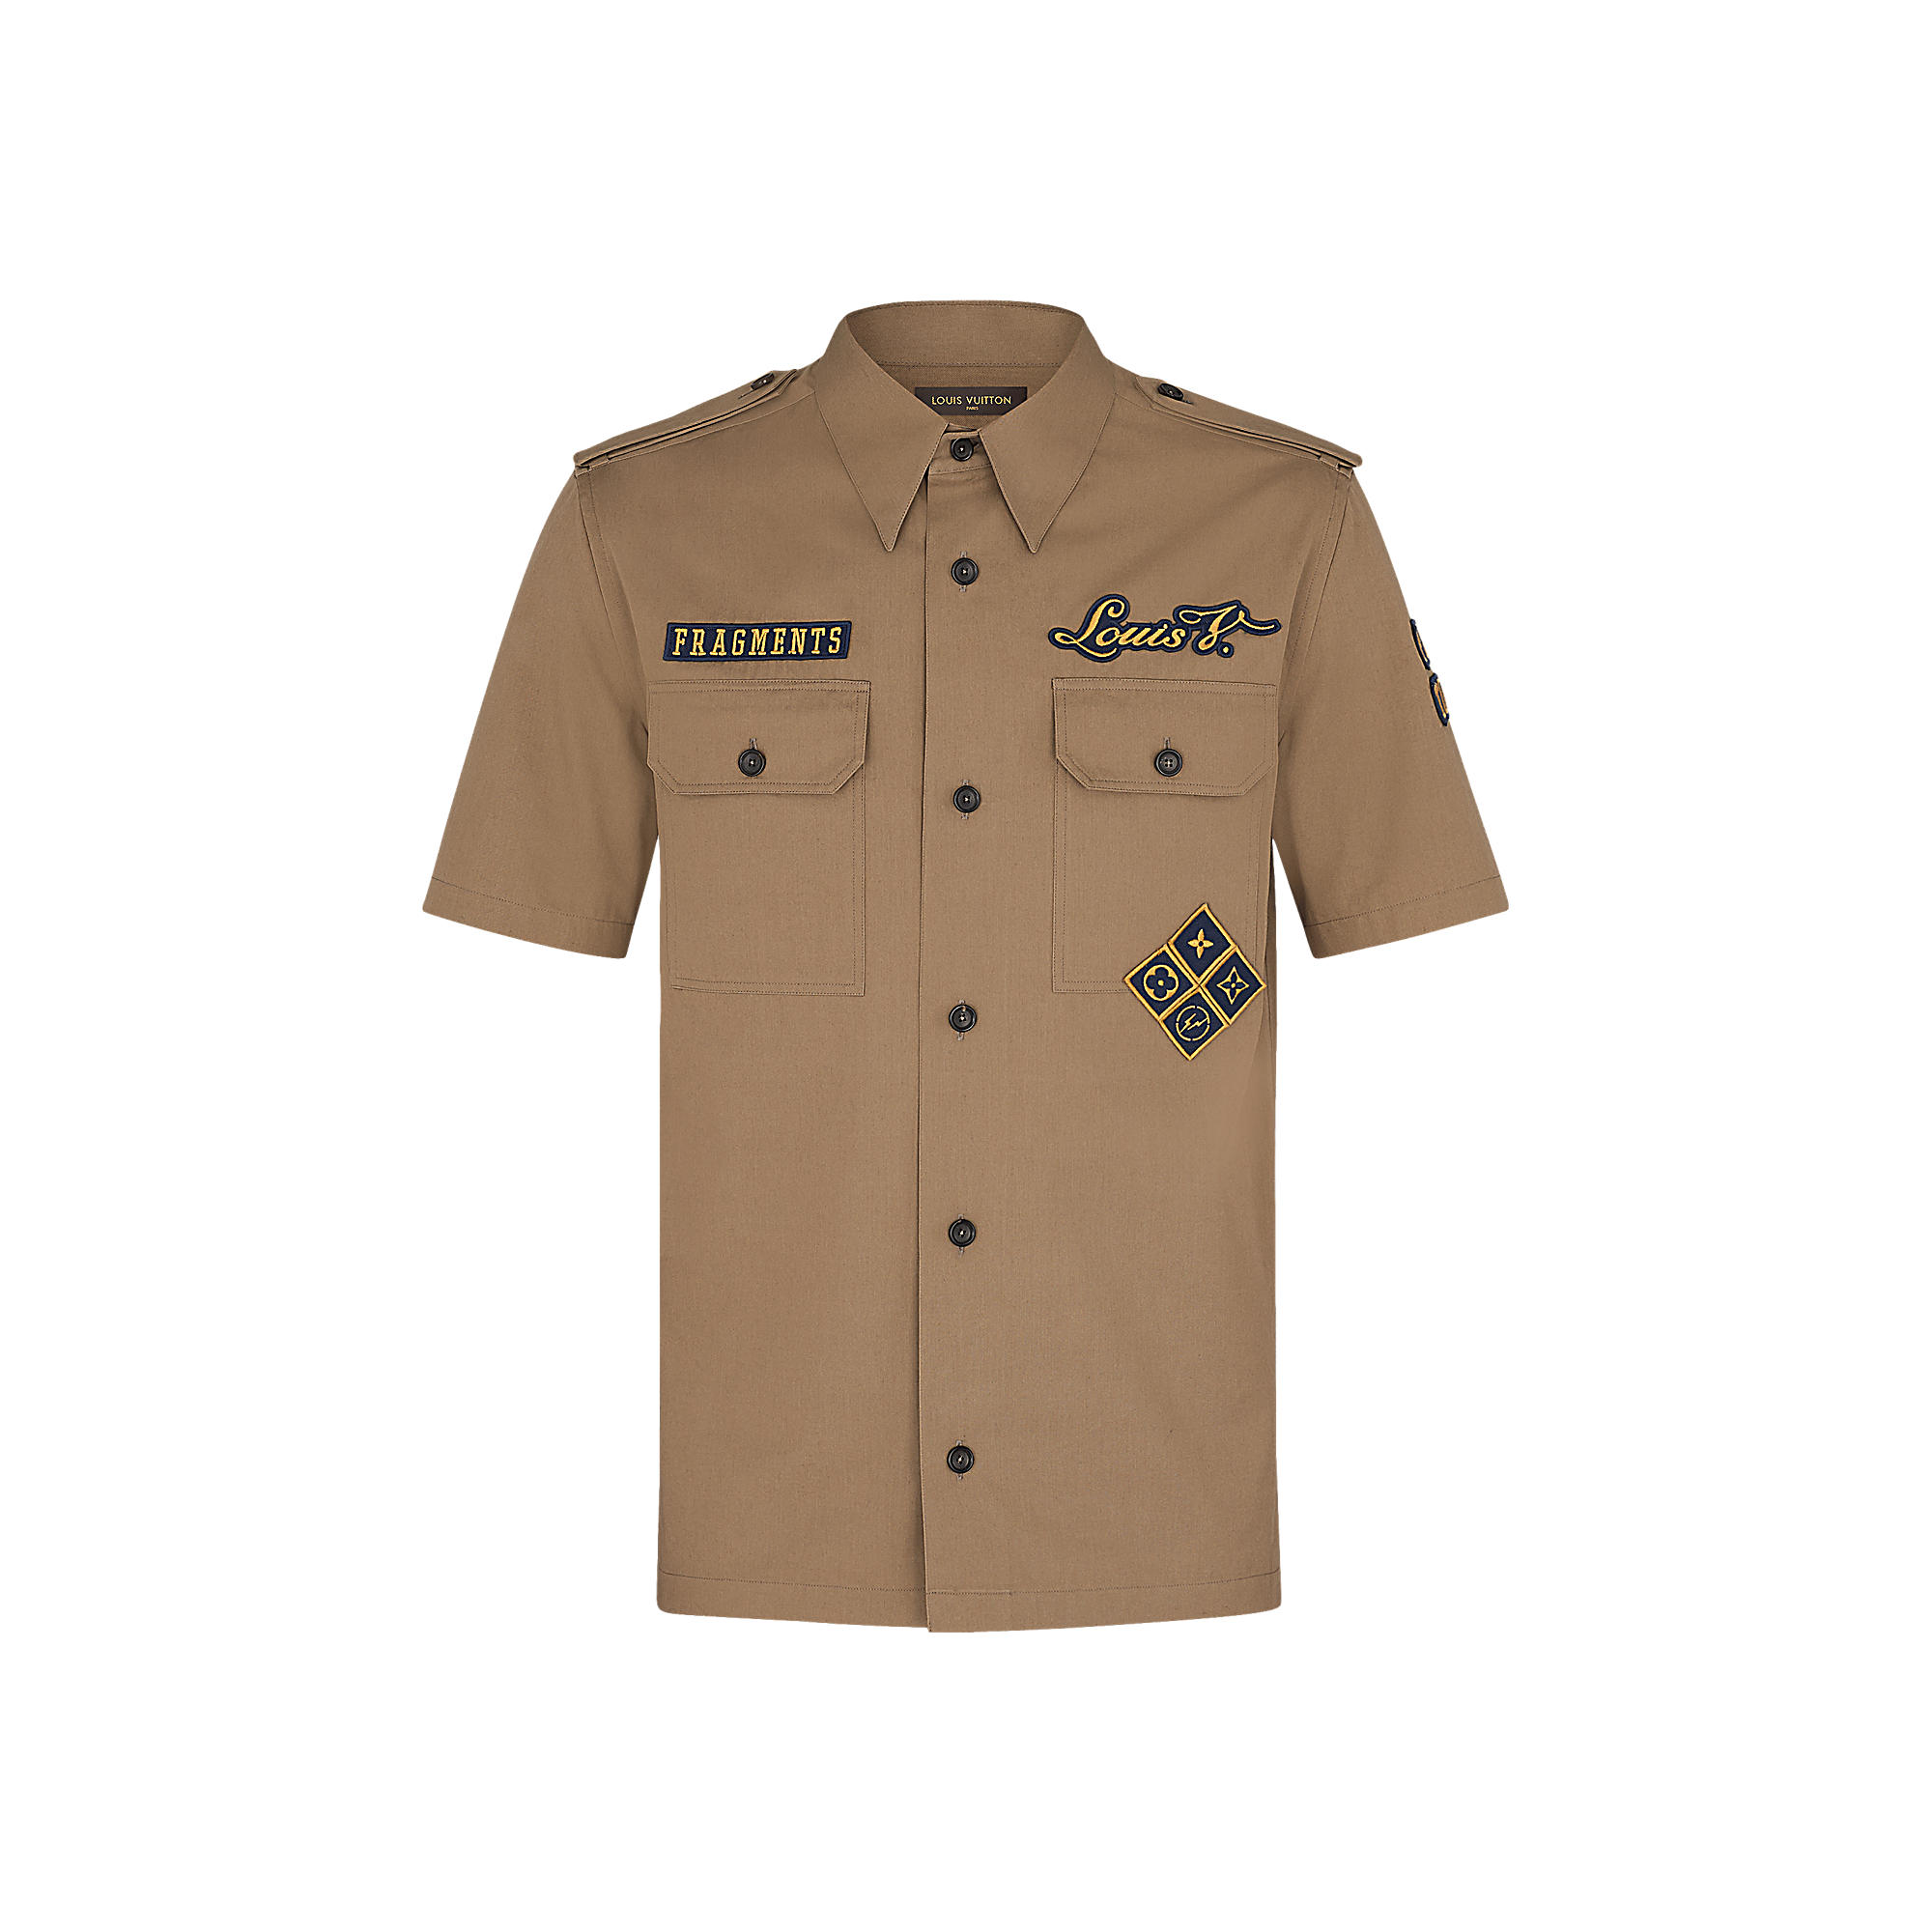 Louis Vuitton Uomo CAMICIA BOY SCOUT FRAGMENT